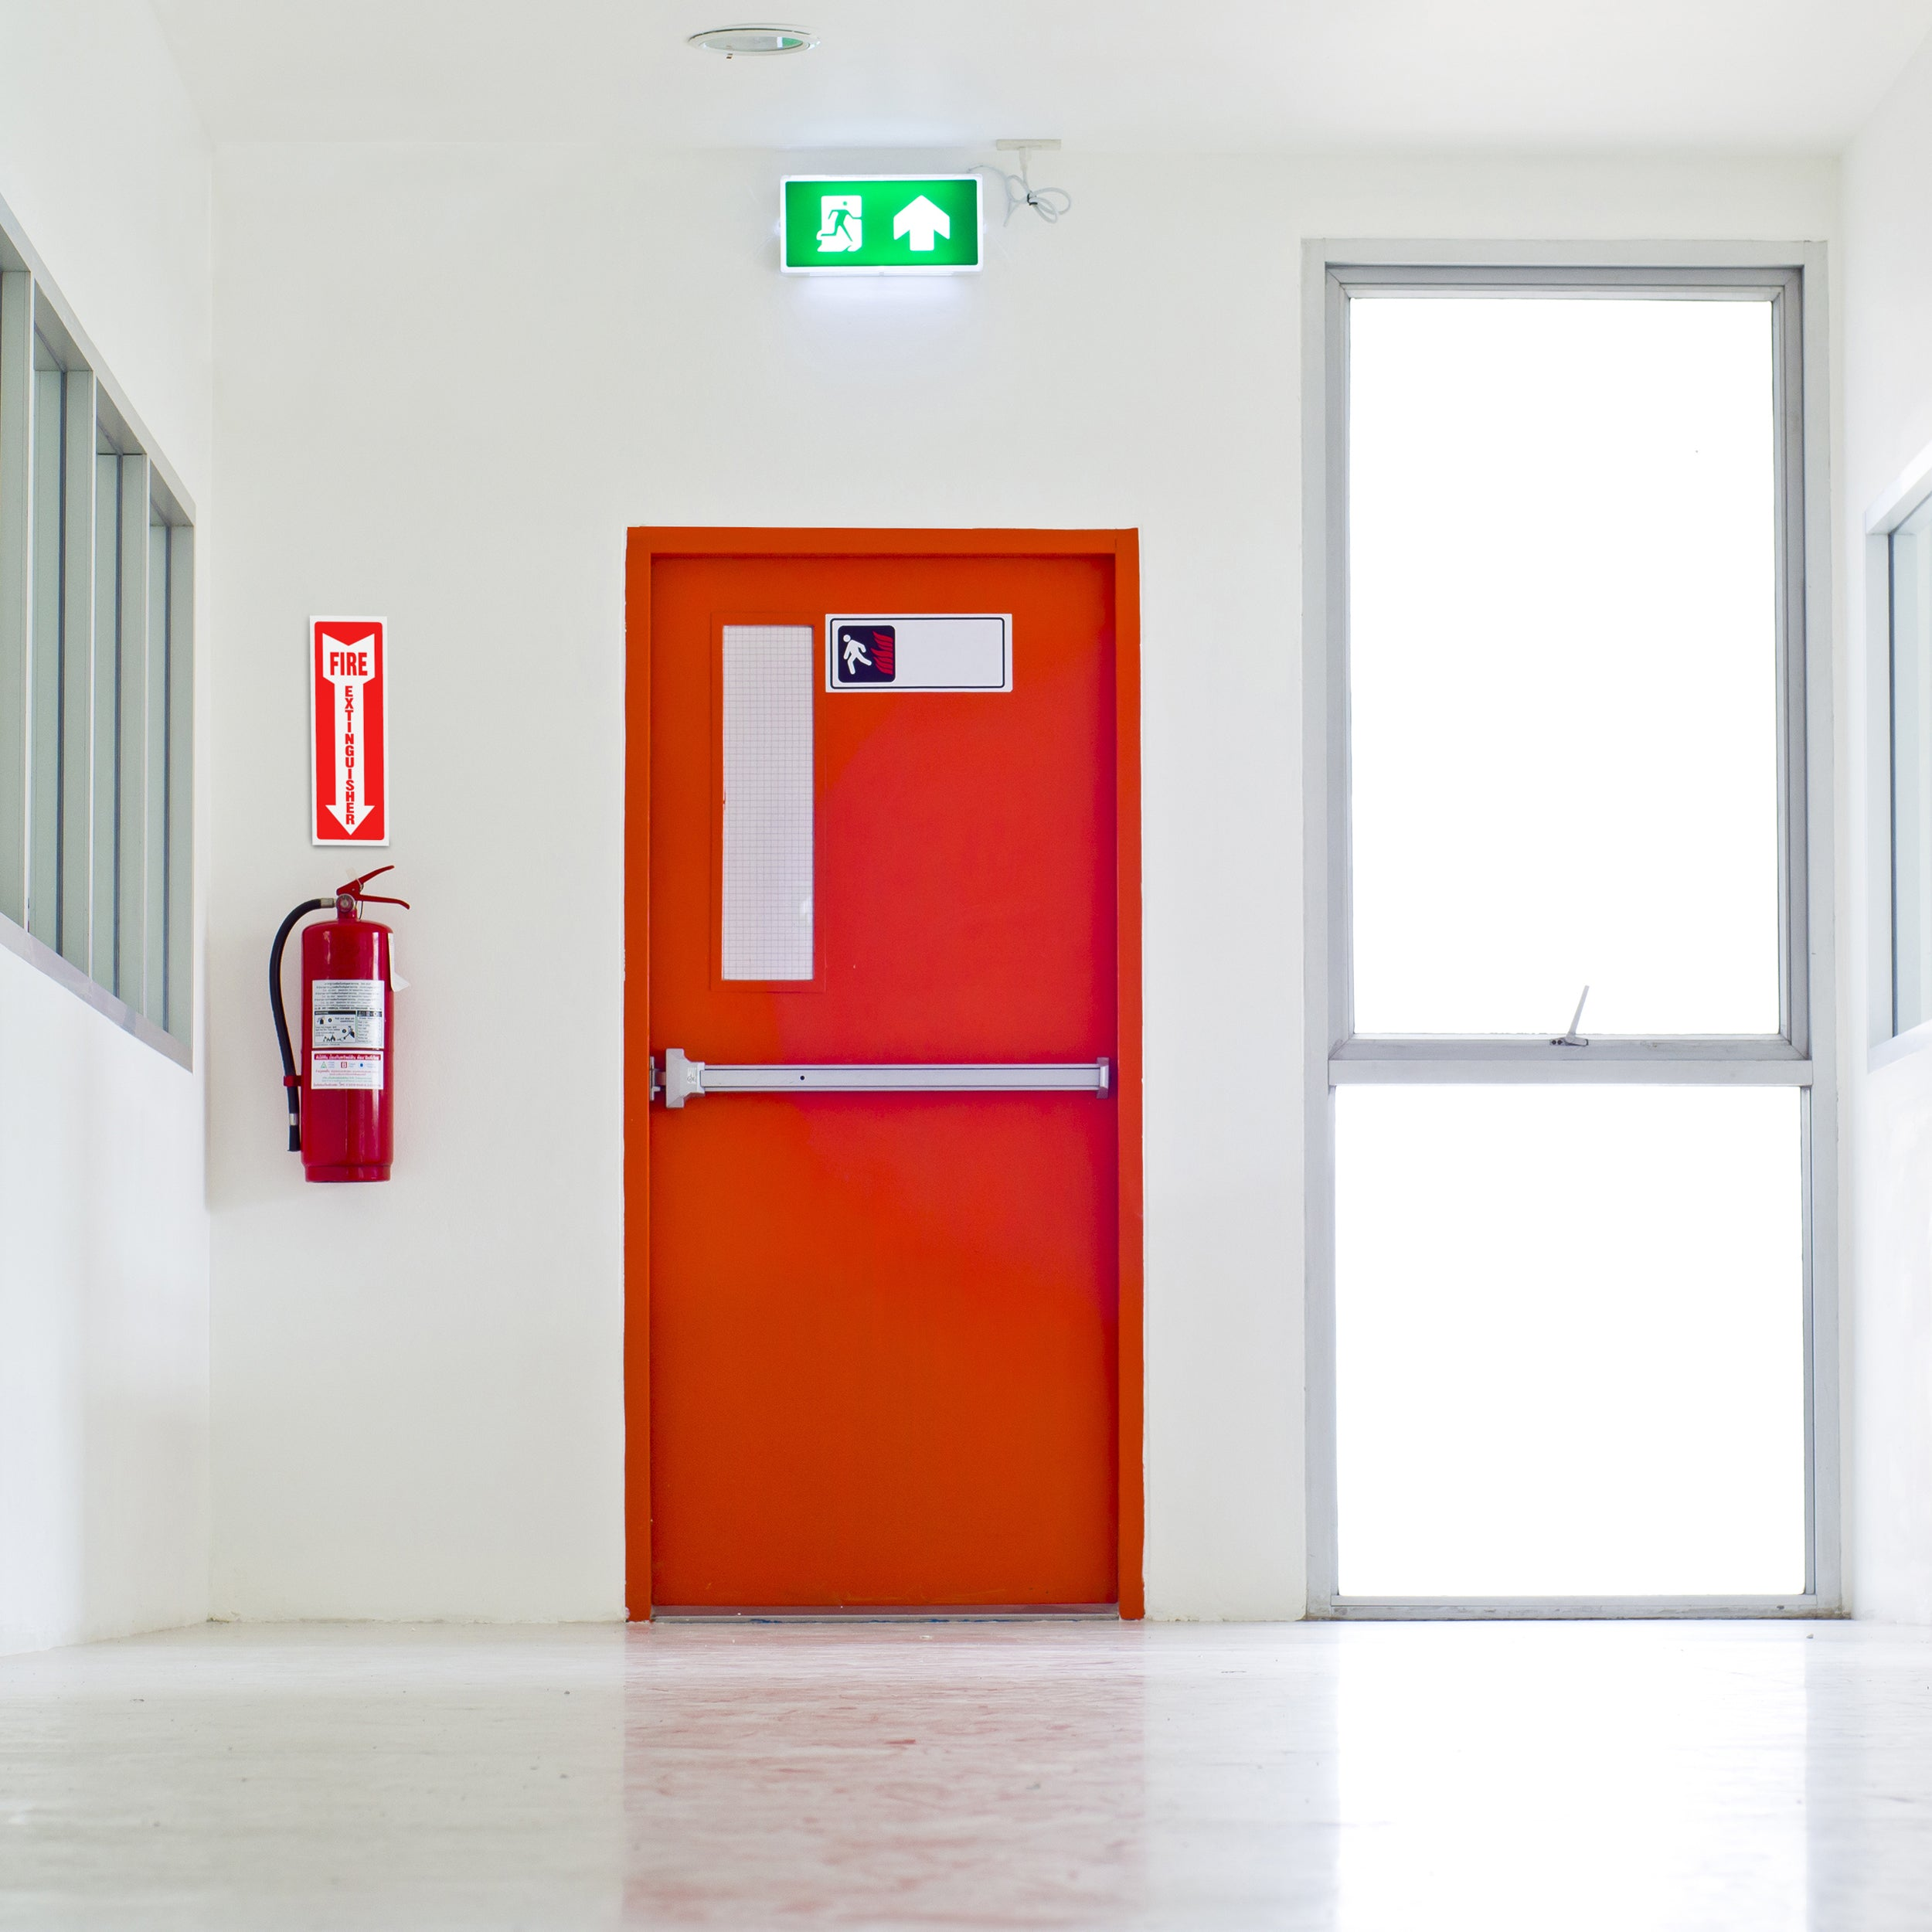 Follow These Steps to Improve Fire Protection for Your Business